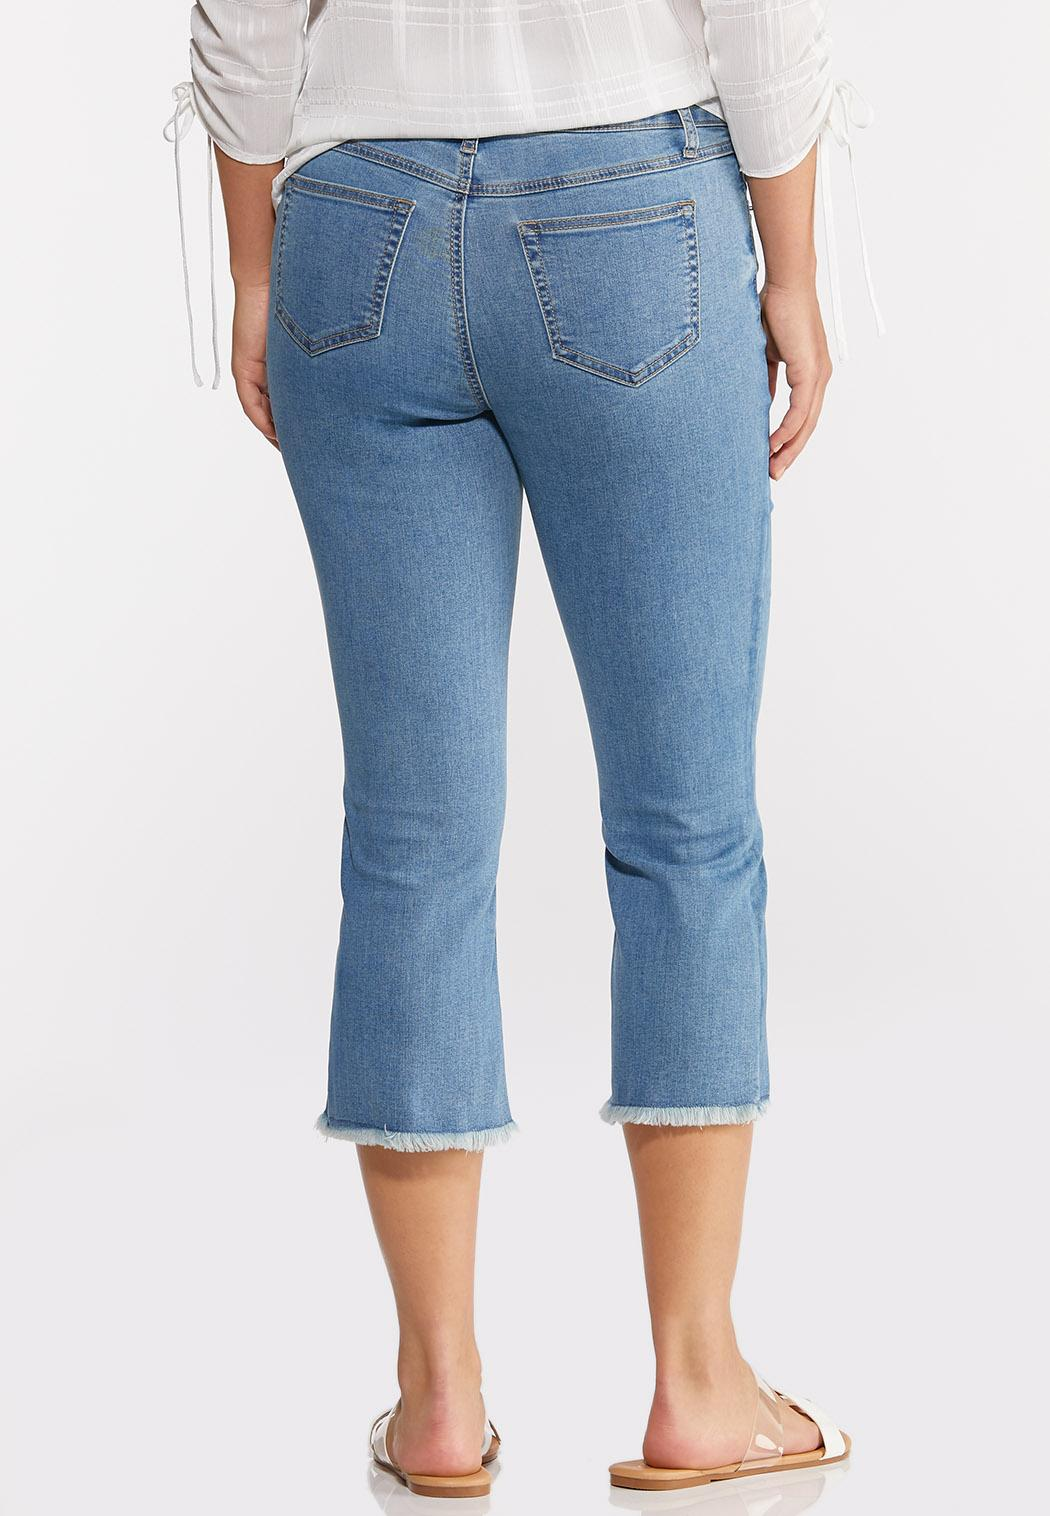 Cropped Frayed Jeans (Item #44272234)